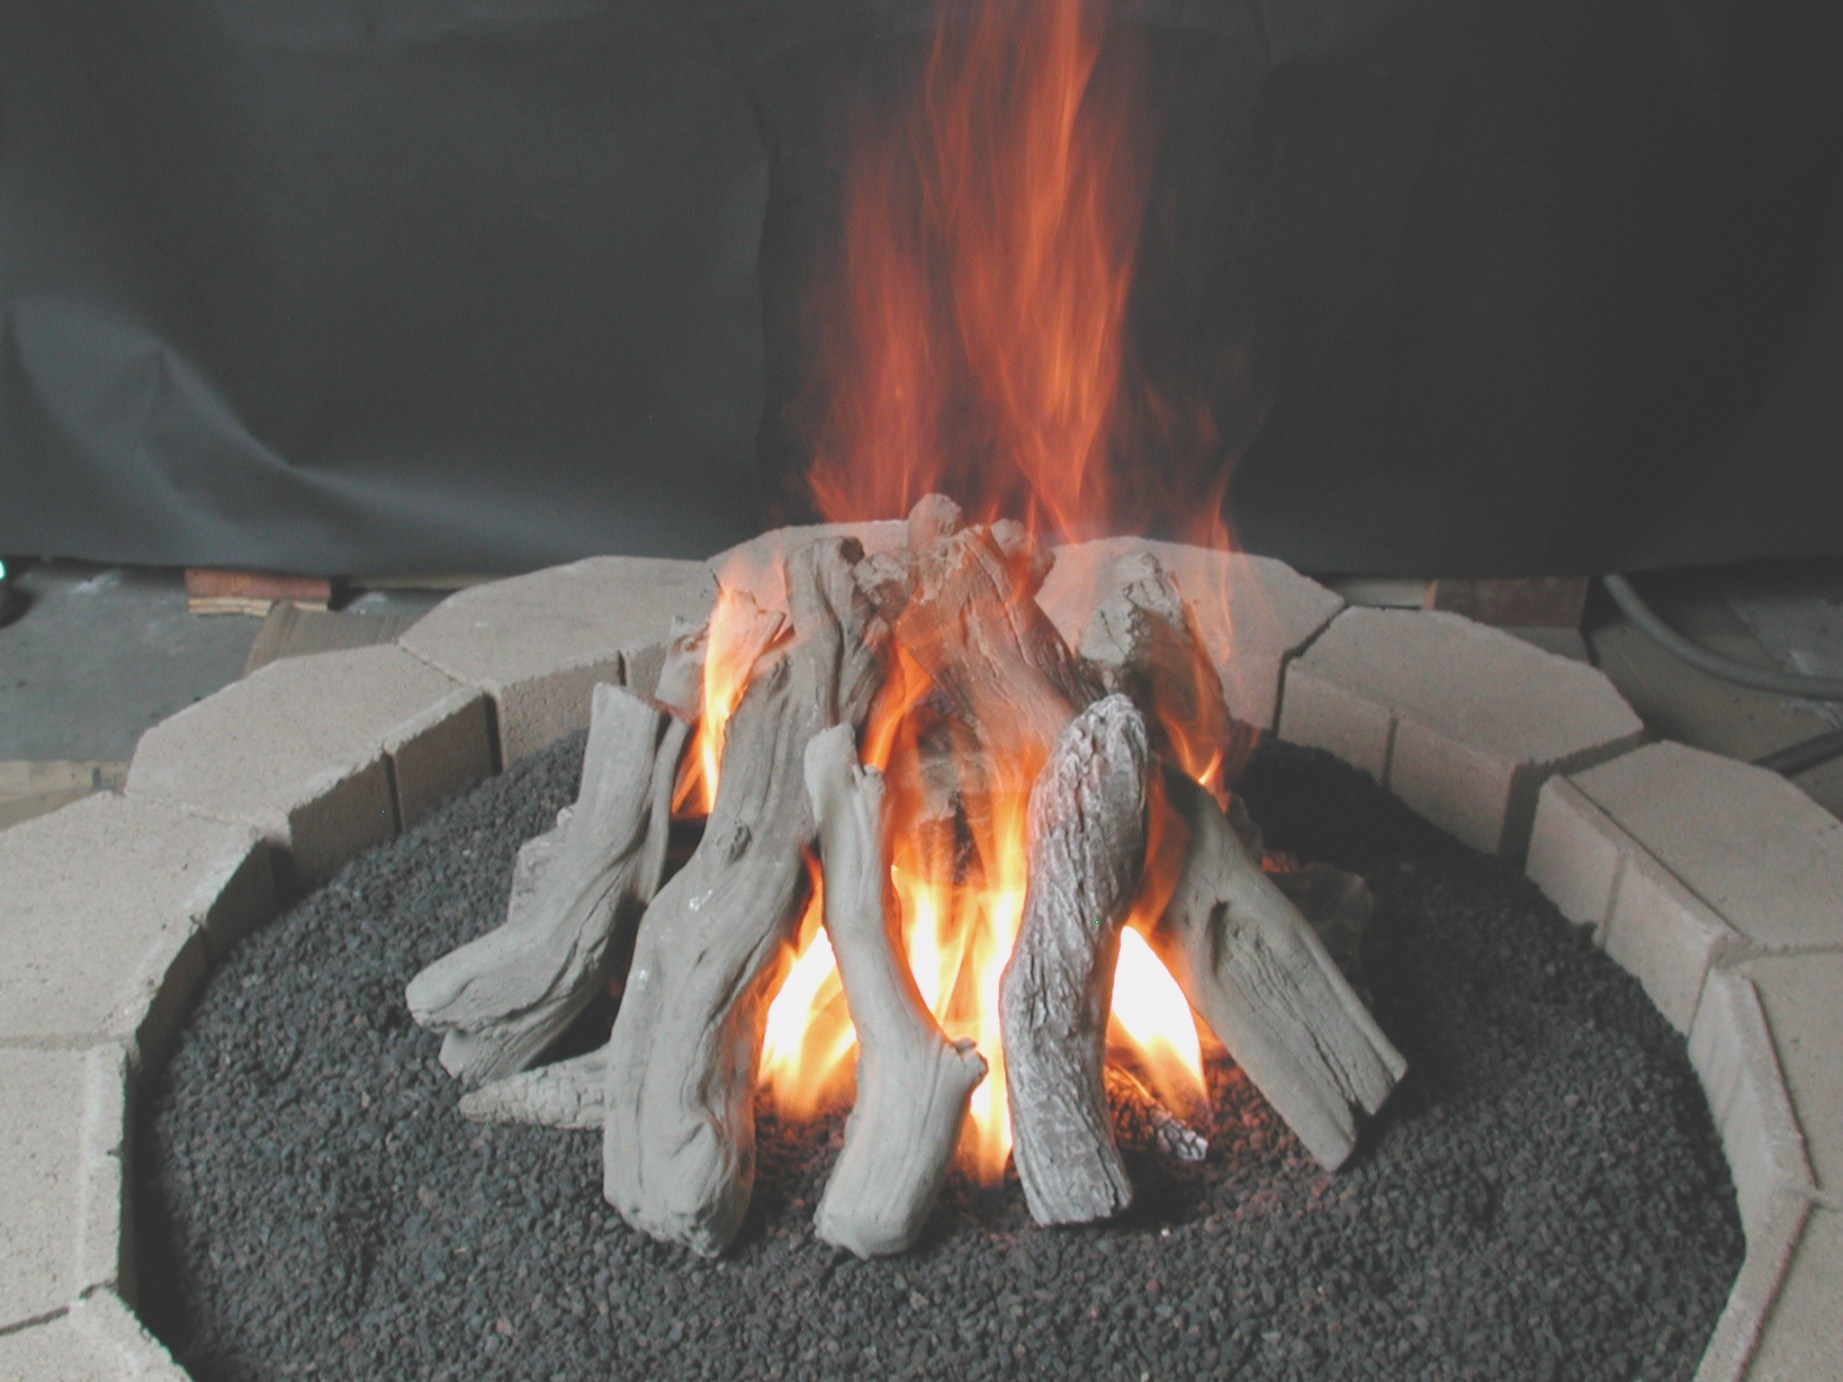 Ceramic Logs For Gas Fire Pit Outdoor Gas Logs Fire Pit And pertaining to dimensions 1843 X 1382